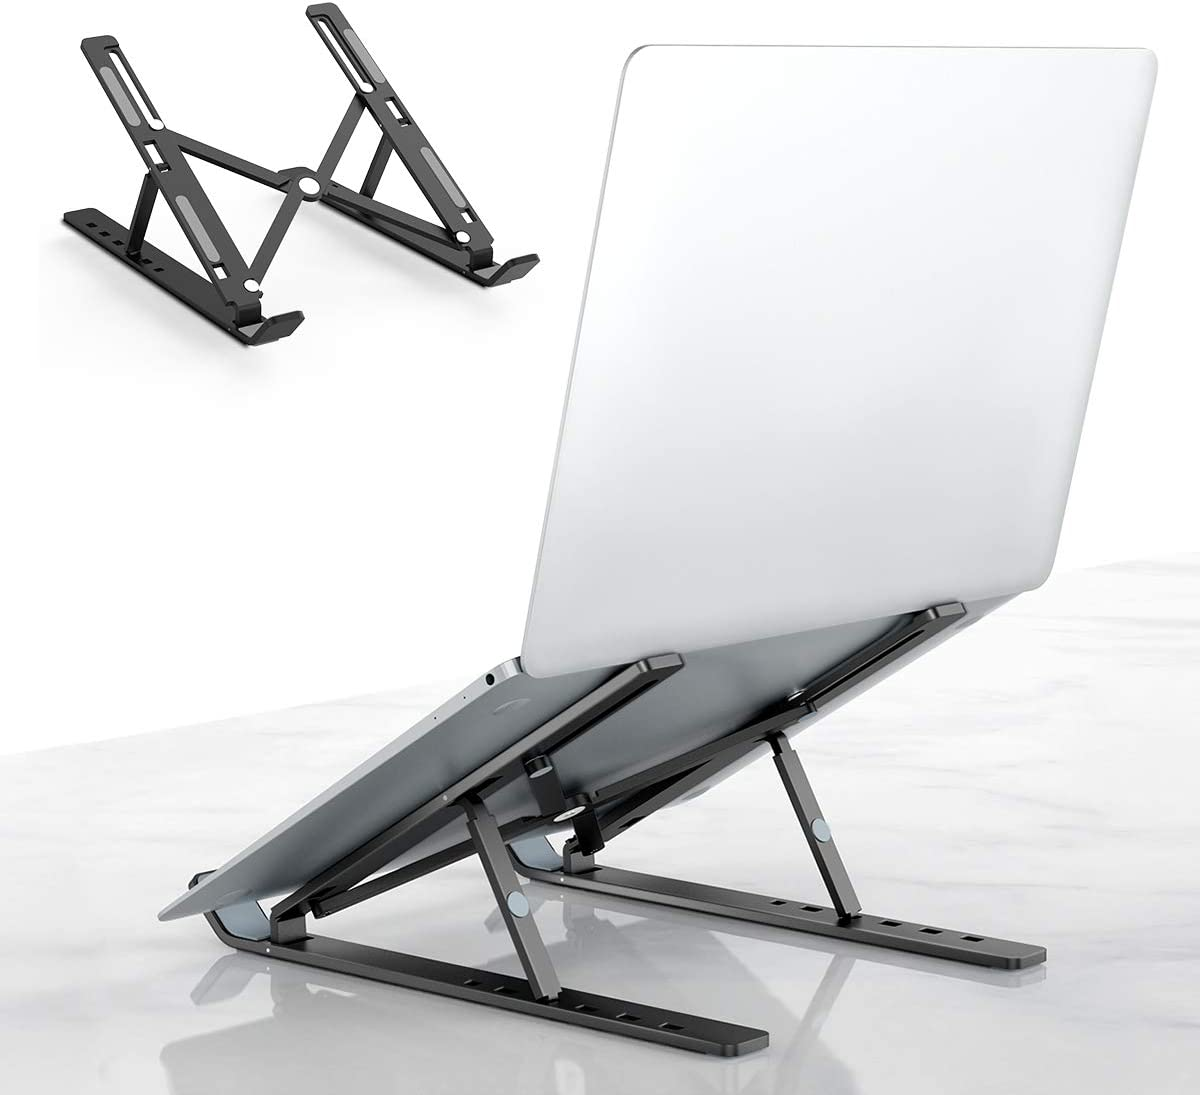 "Laptop Tablet Stand, Universal Lightweight Adjustable Aluminum Laptop Computer Stand, Ergonomic Foldable Portable Desktop Tray Cooling Holder Compatible with Dell, HP and 10""-15.6"" Devices (Black)"